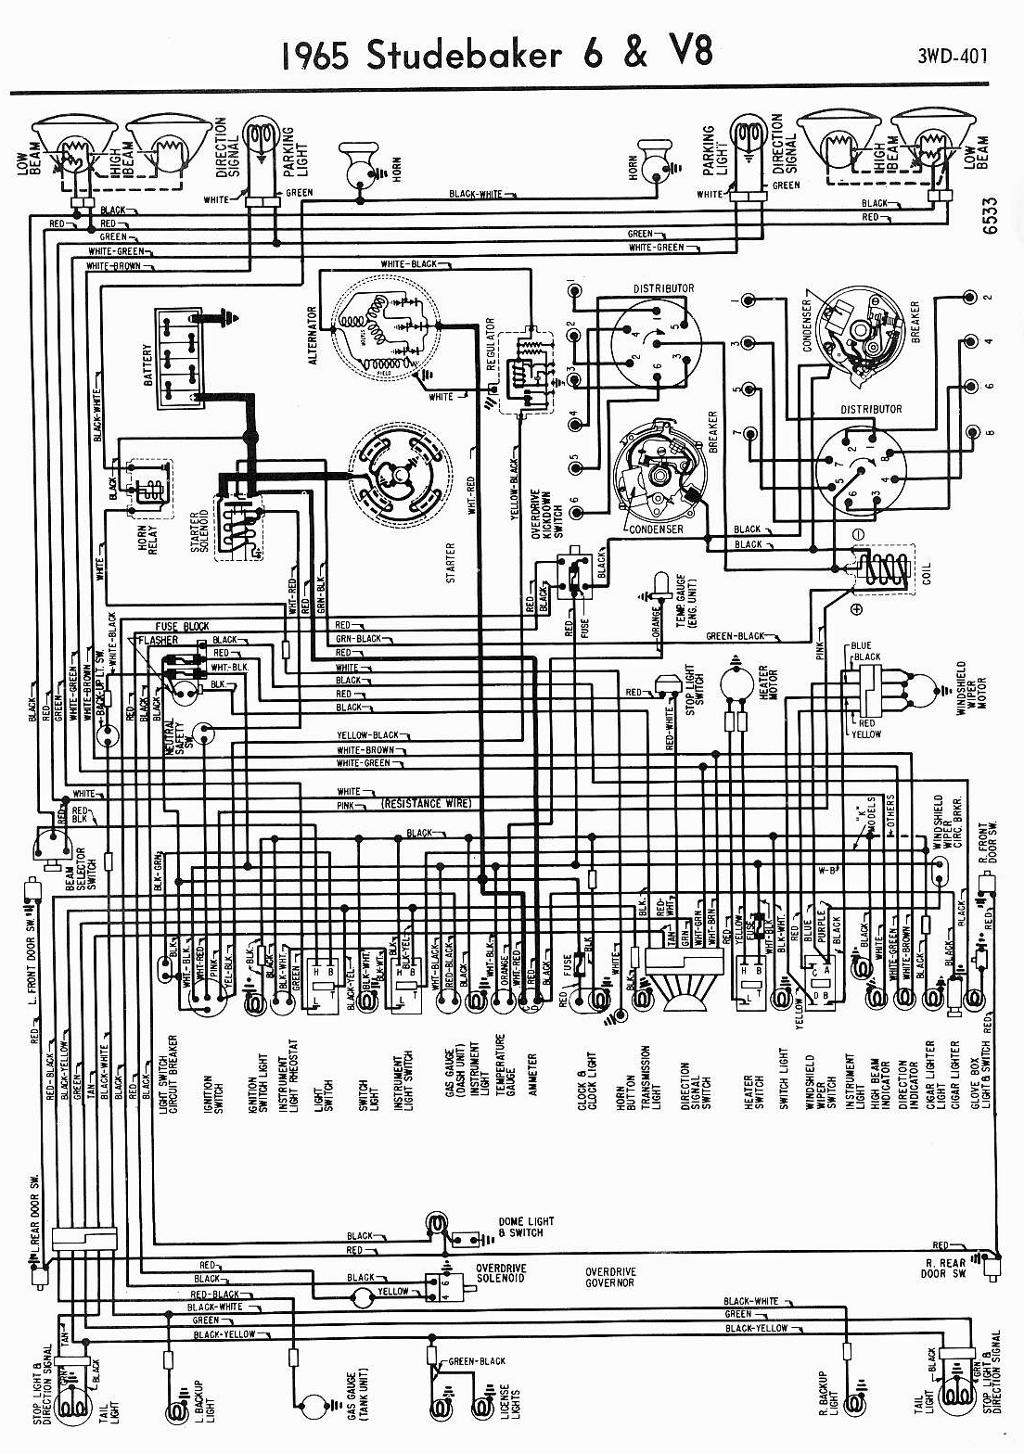 Wiring Diagram For Studebaker And V on 1965 tvr wiring diagram